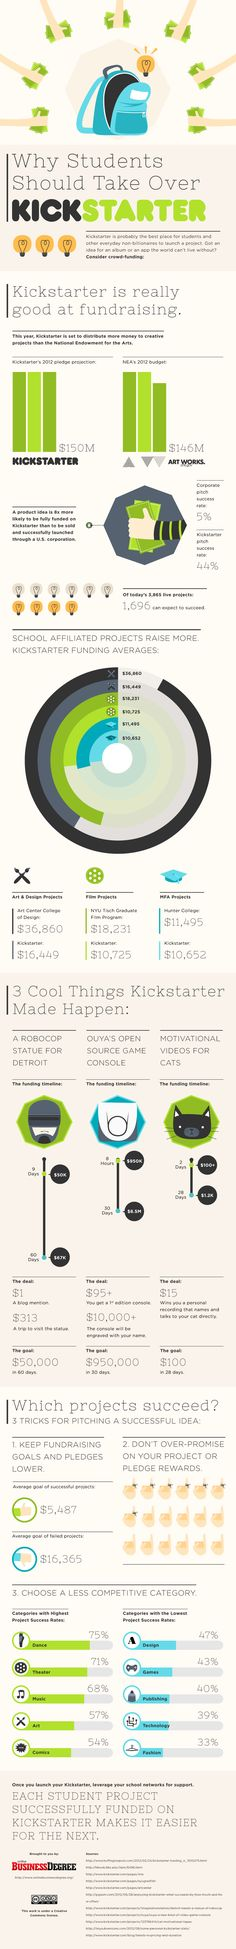 If you've got an idea for a creative project, launching a pitch on Kickstarter might be your best shot. The site accepts and posts 75% of applicant ideas. And nearly 1/2 of these end up raising enough pledges to receive full funding. With project backers giving as little as $20 to projects, the incentives and interests of investors on Kickstarter are also younger and newer than anyplace else.   Of the 28,000 projects funded in the past 4 years, the average funding goals were <$5,000.